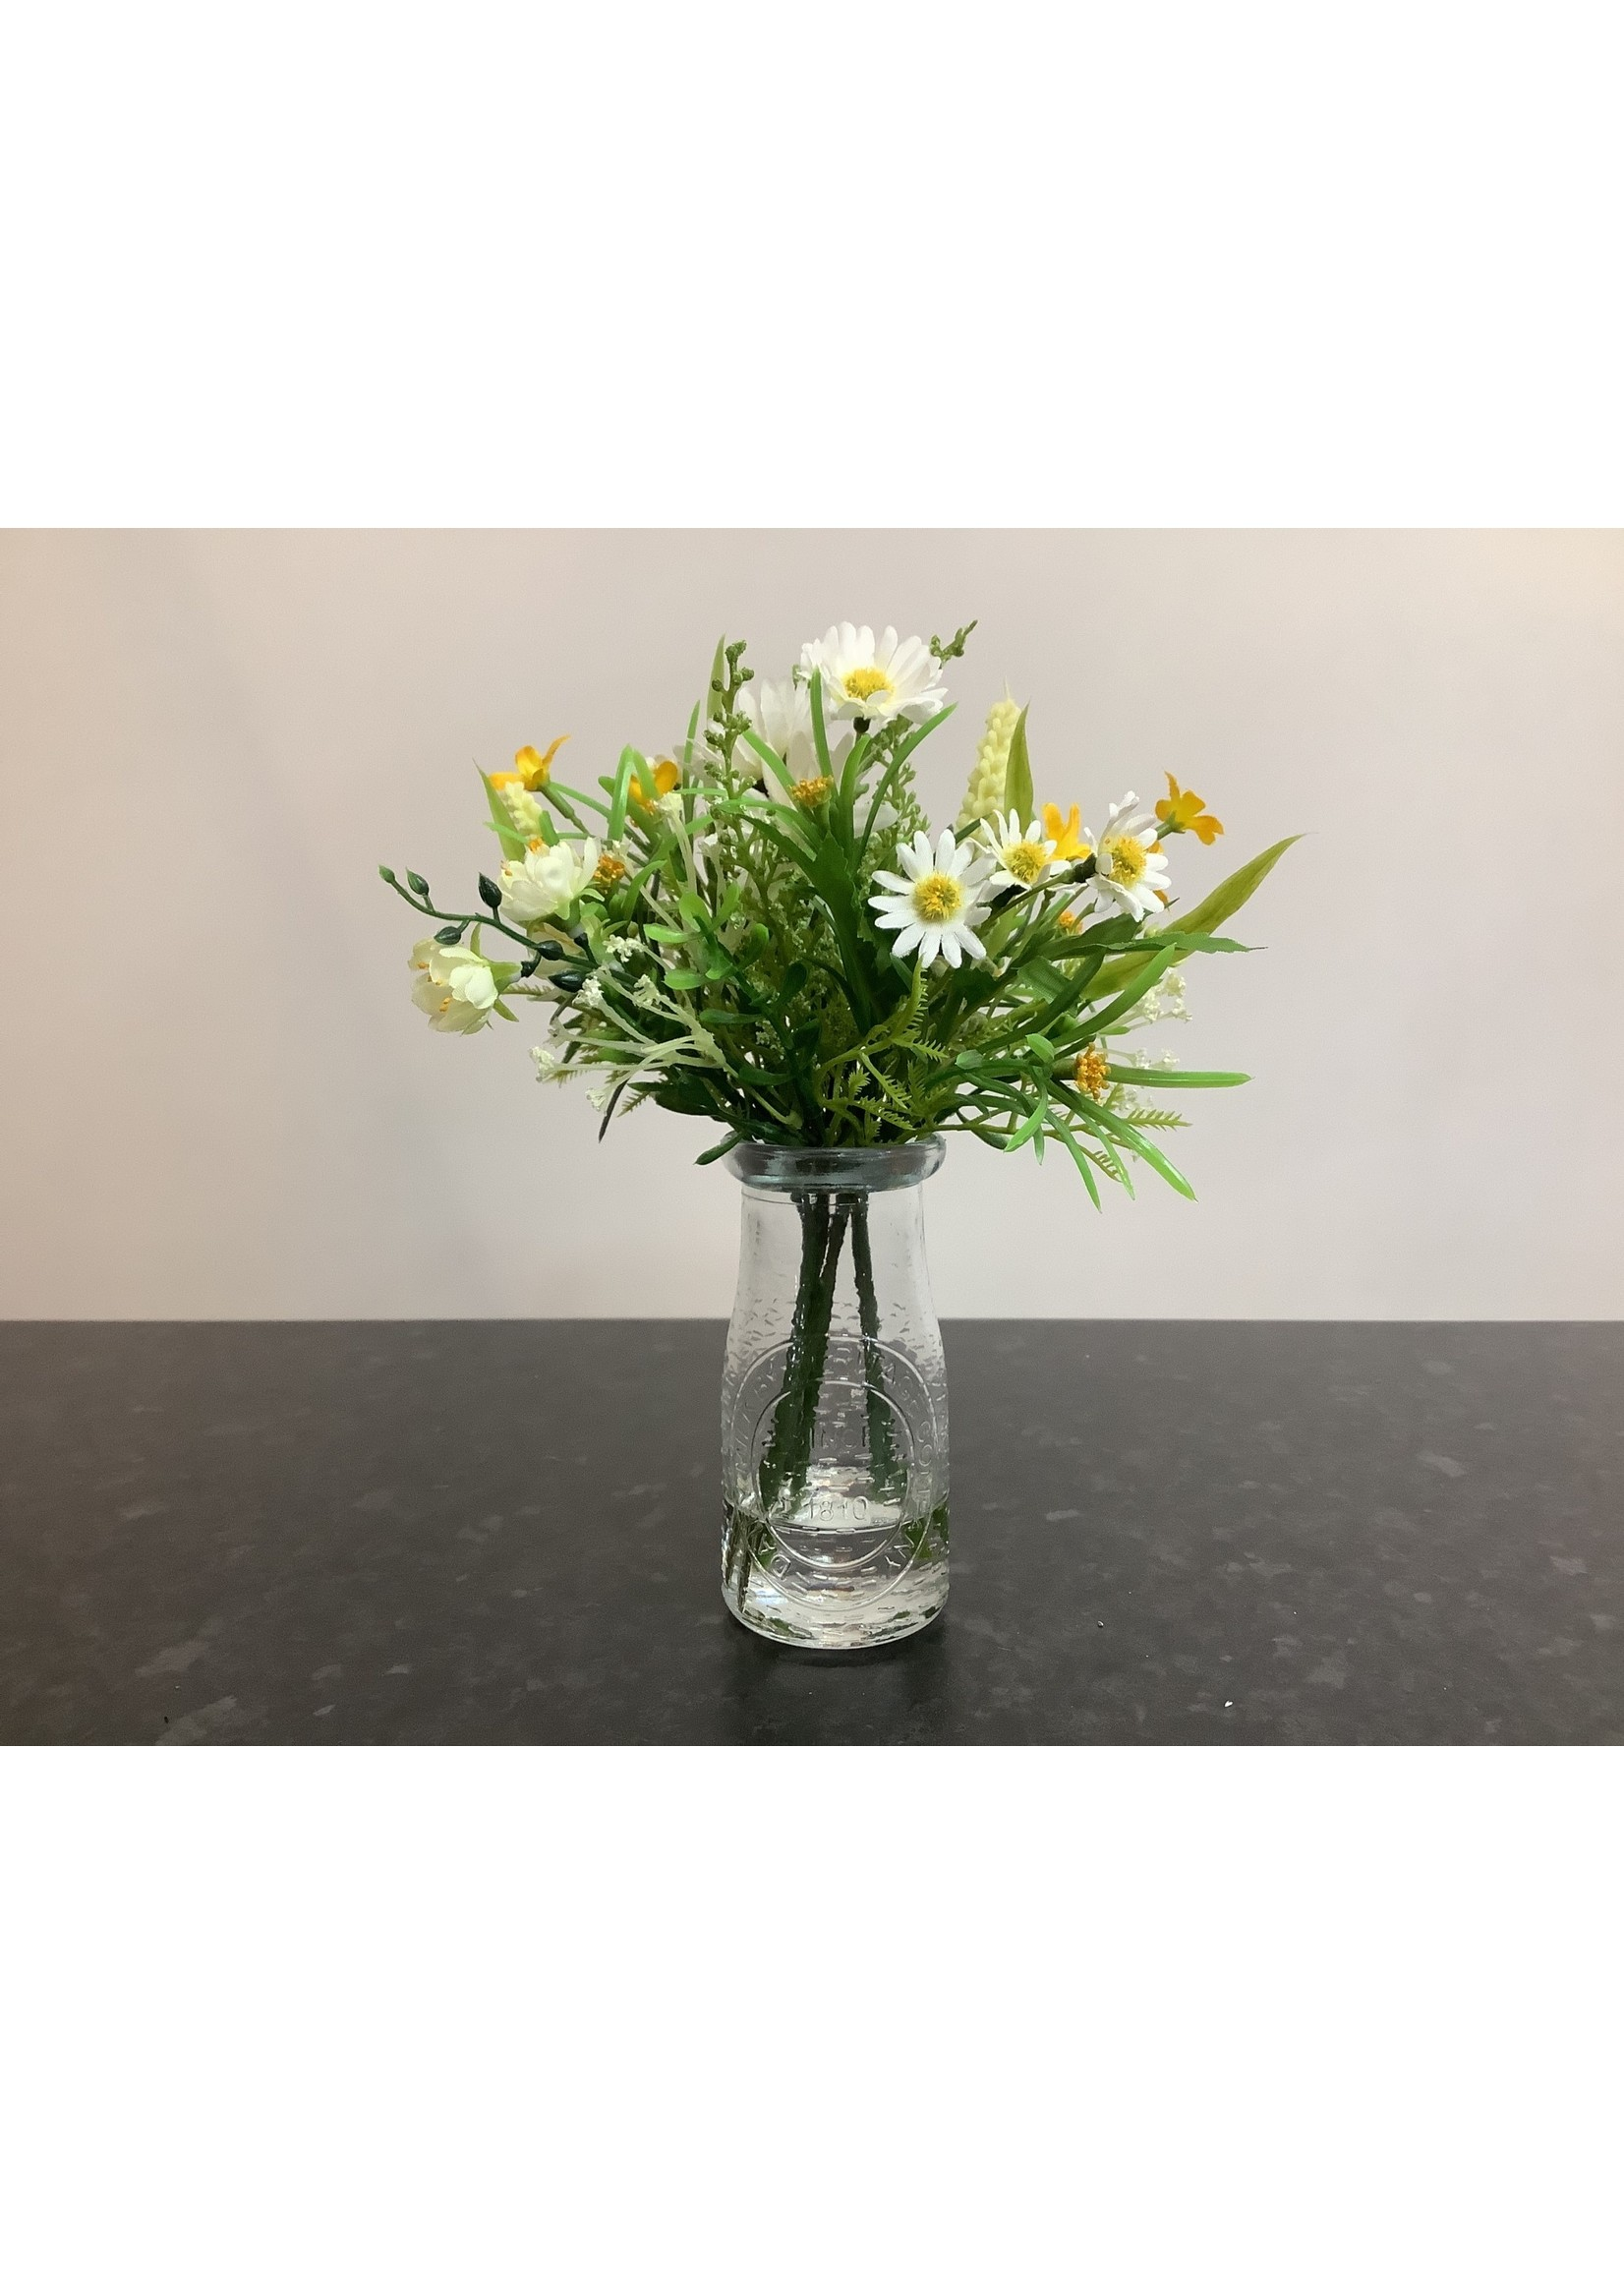 Daisy and blossom in milk bottle 22cm tall